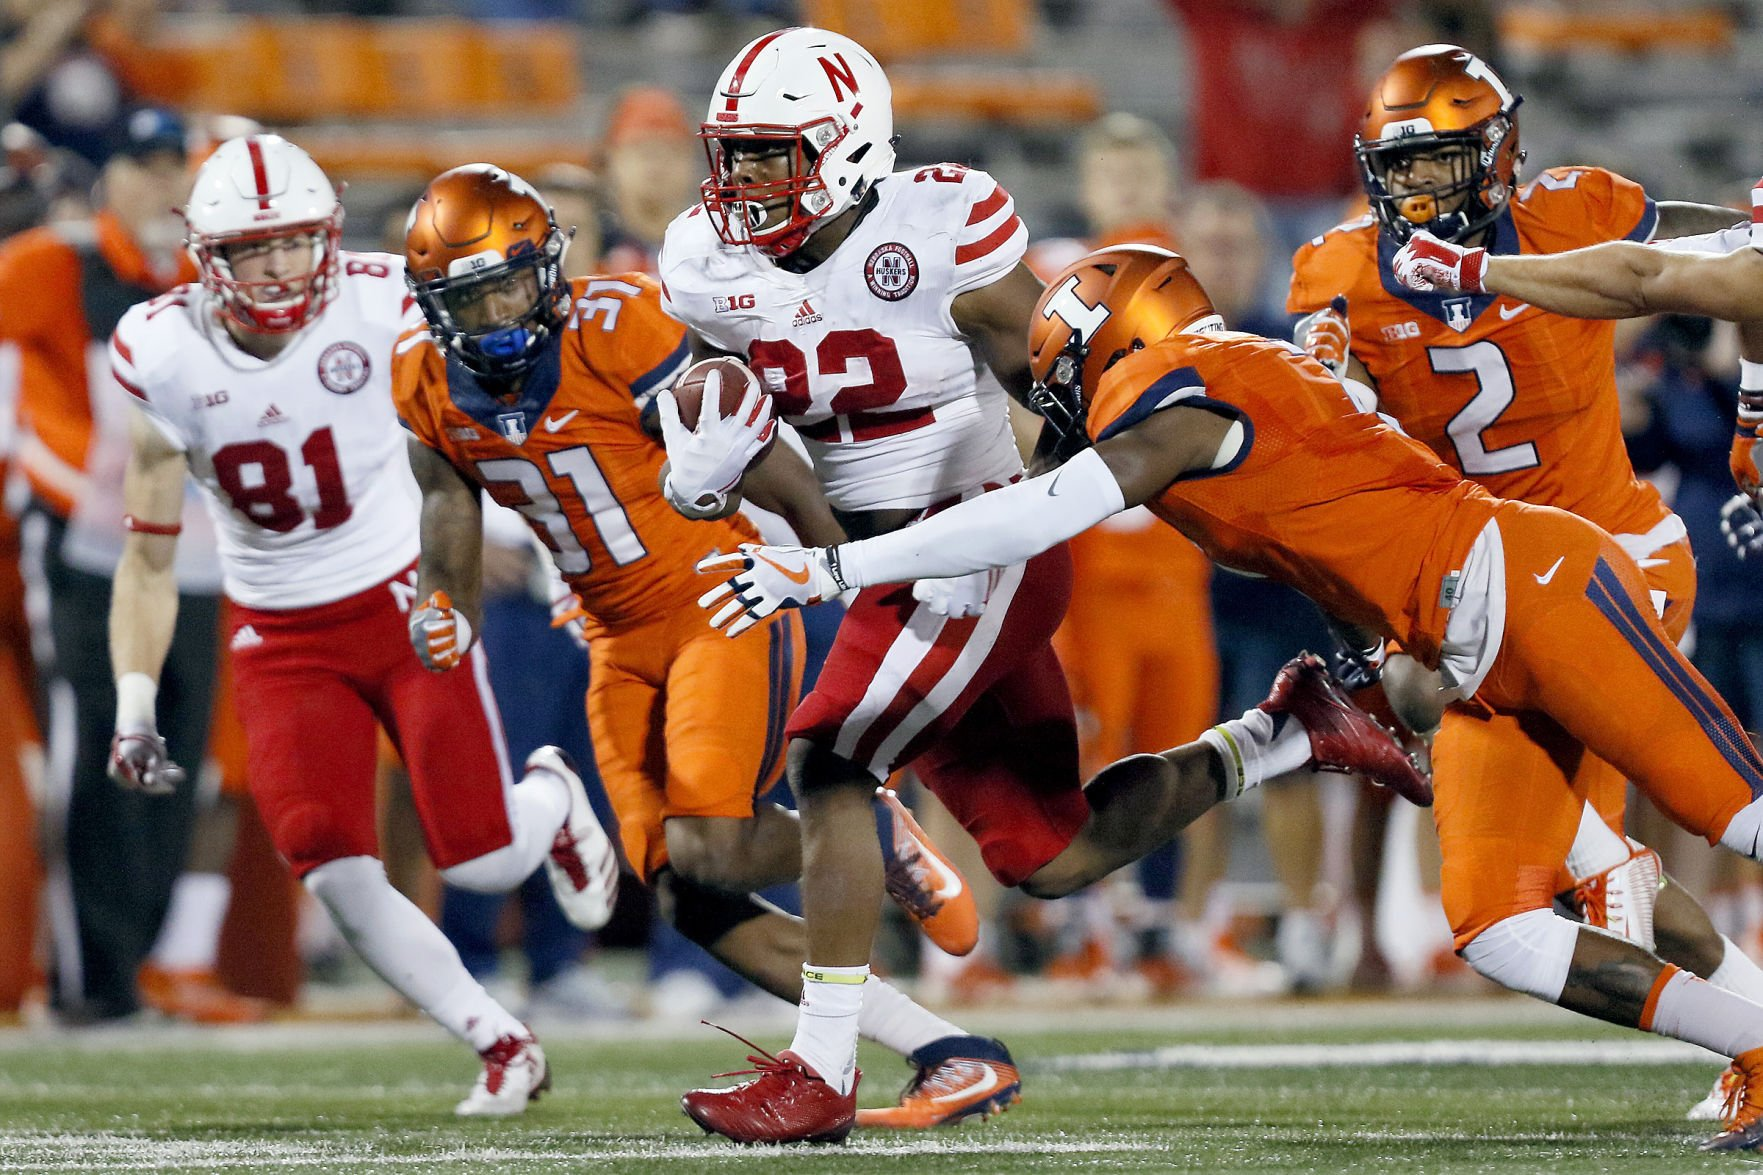 Huskers set sights on Badgers after dropping IL in Champaign